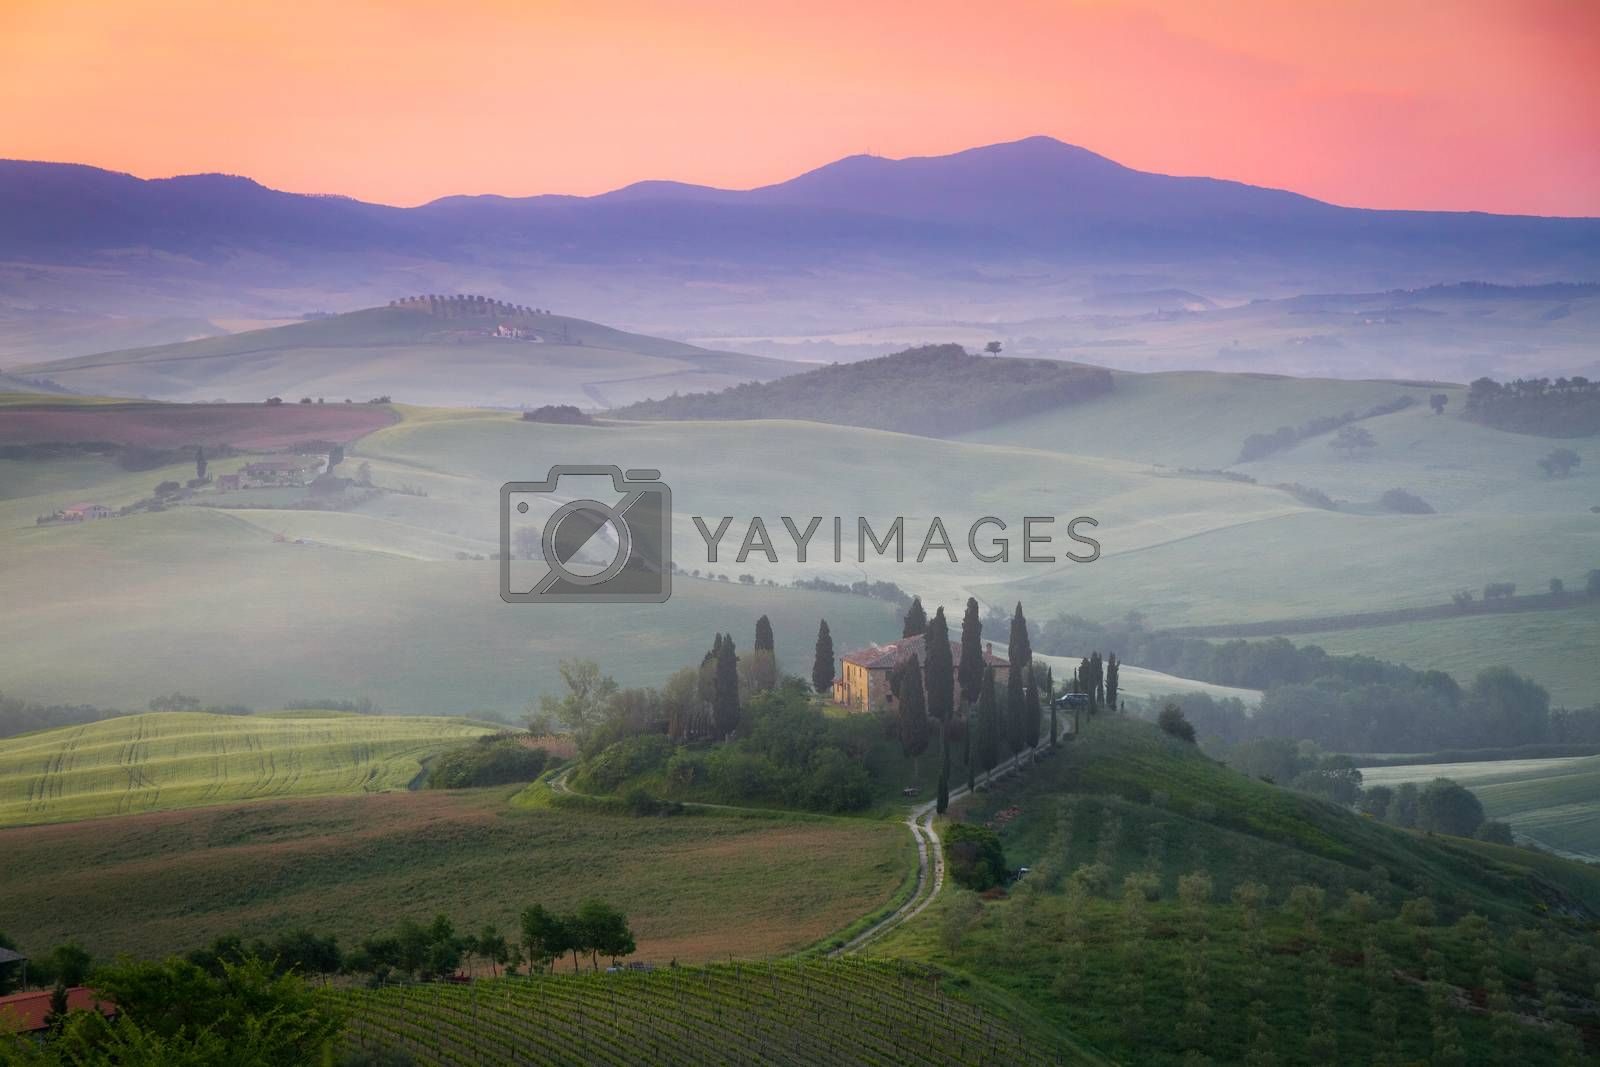 Royalty free image of Tuscany Farmhouse Belvedere at dawn, San Quirico d'Orcia, Italy by fisfra